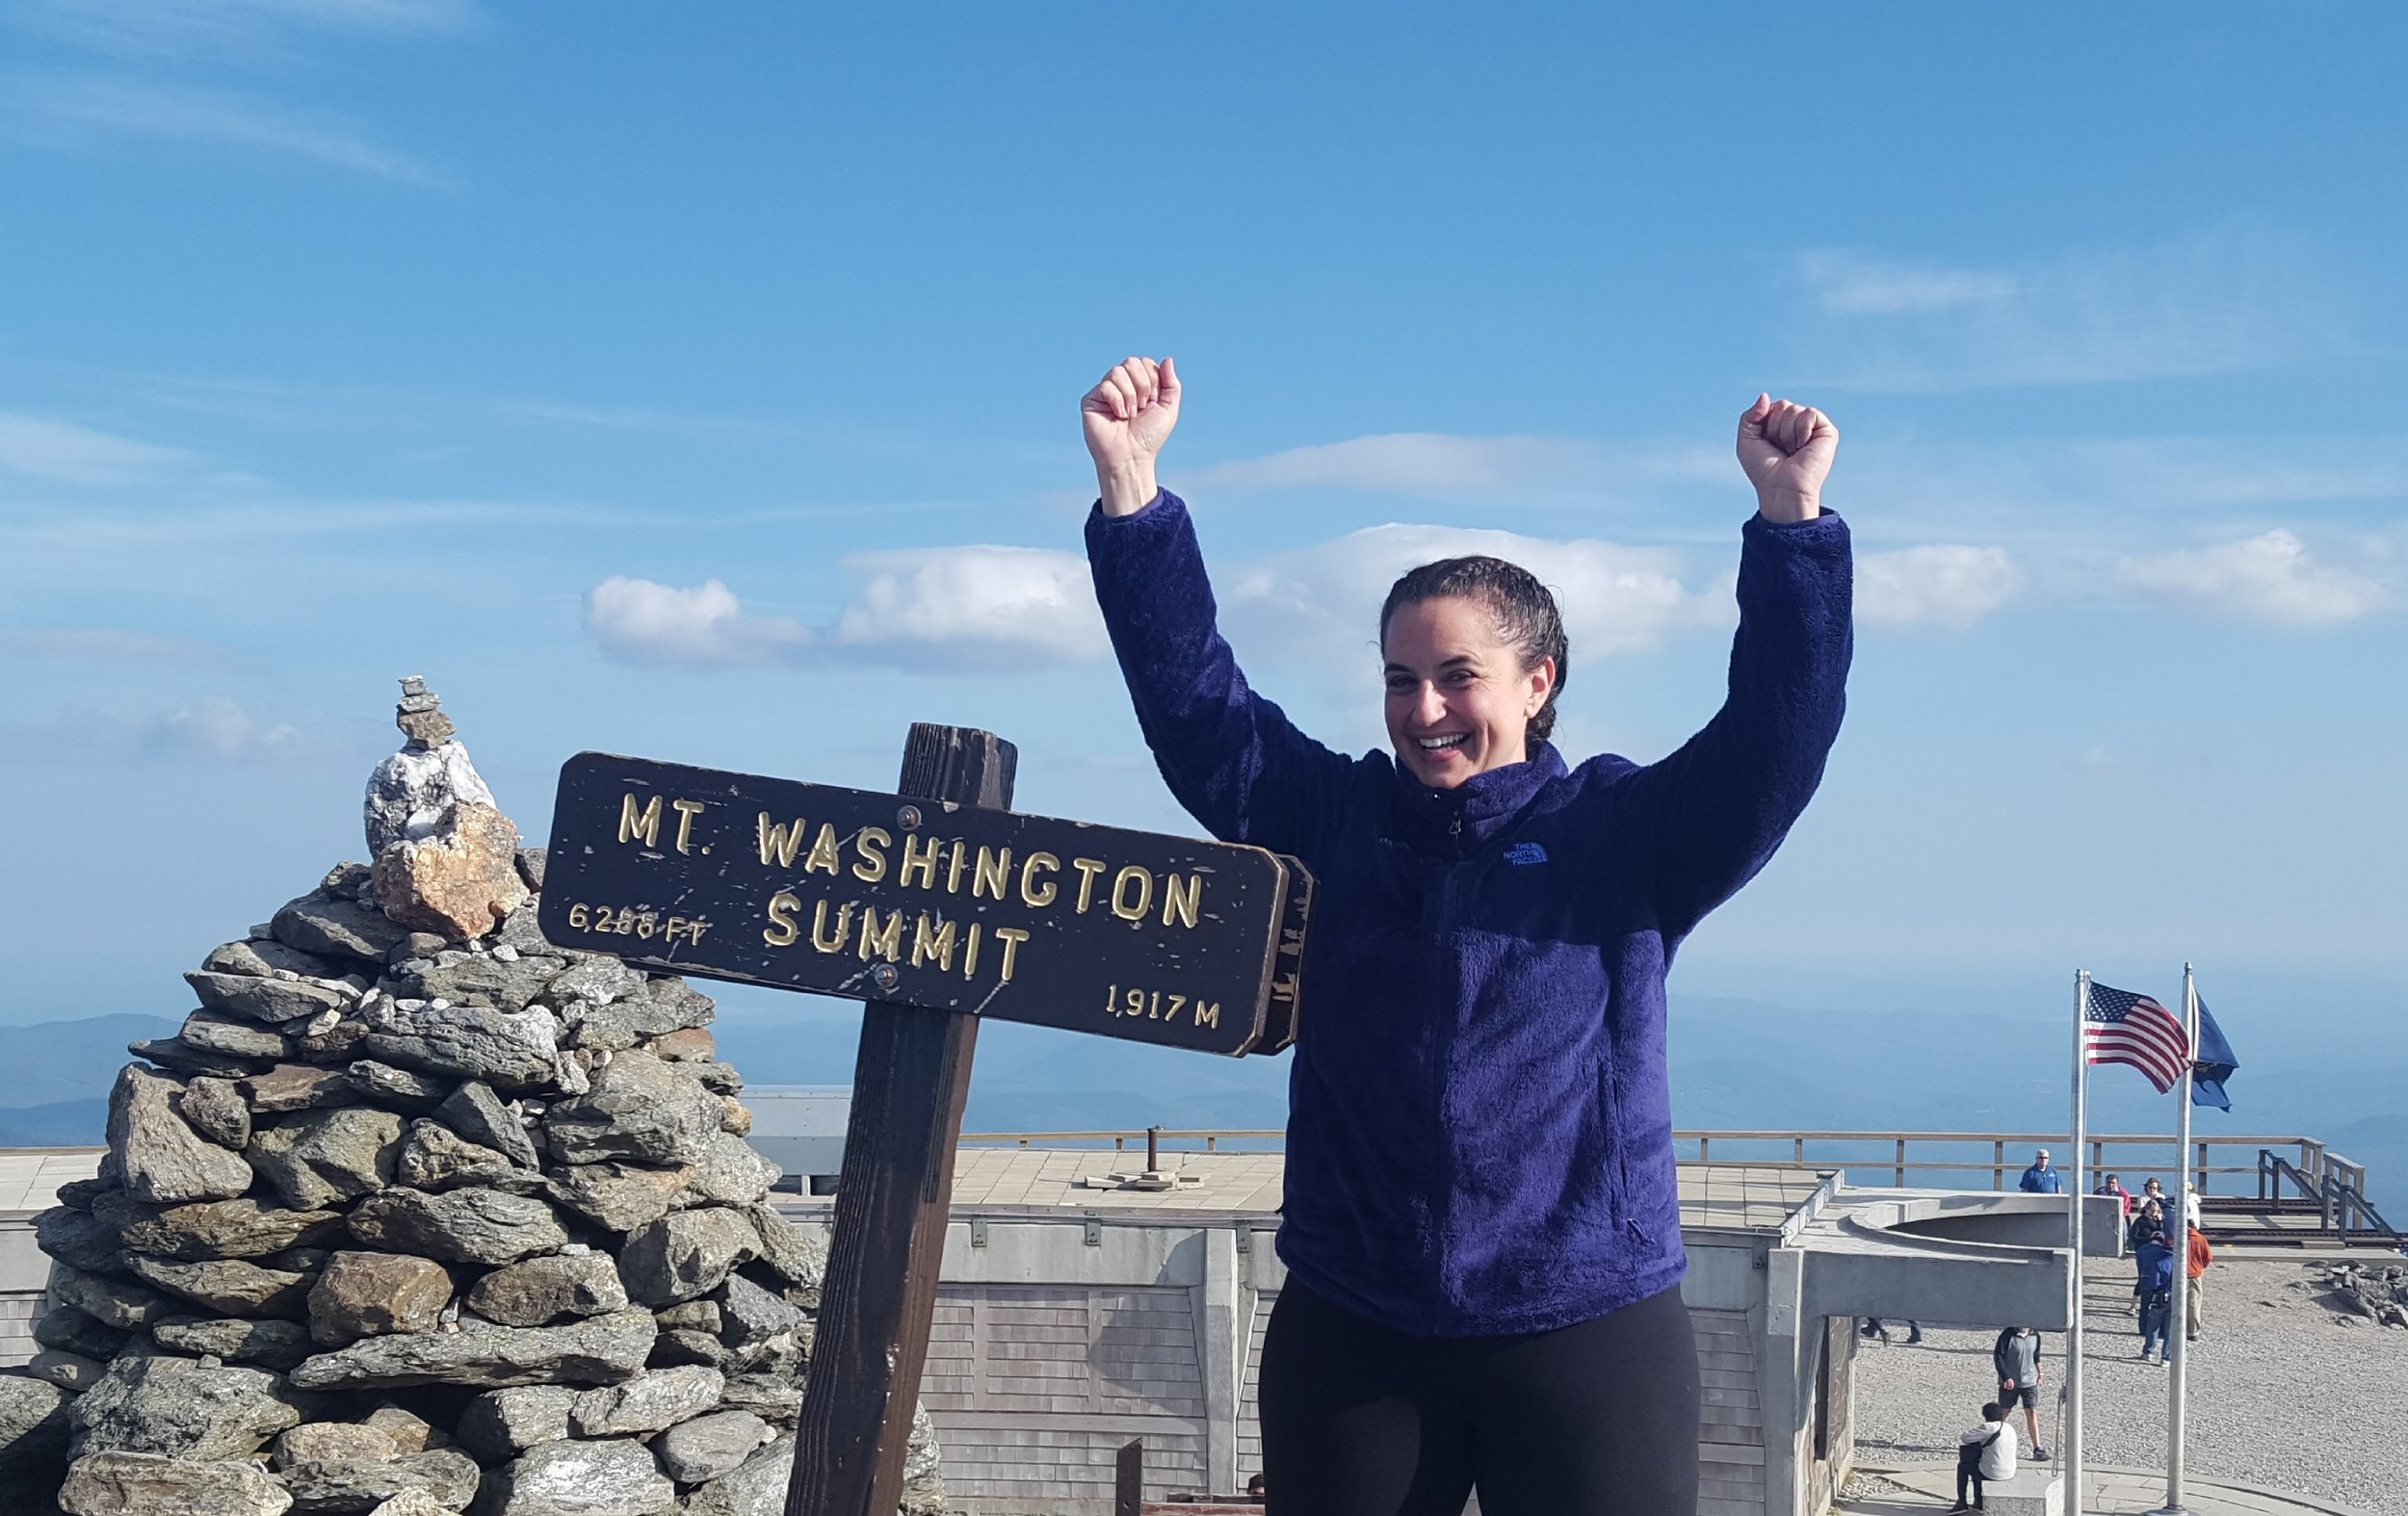 Leslie on top of Mt. Washington